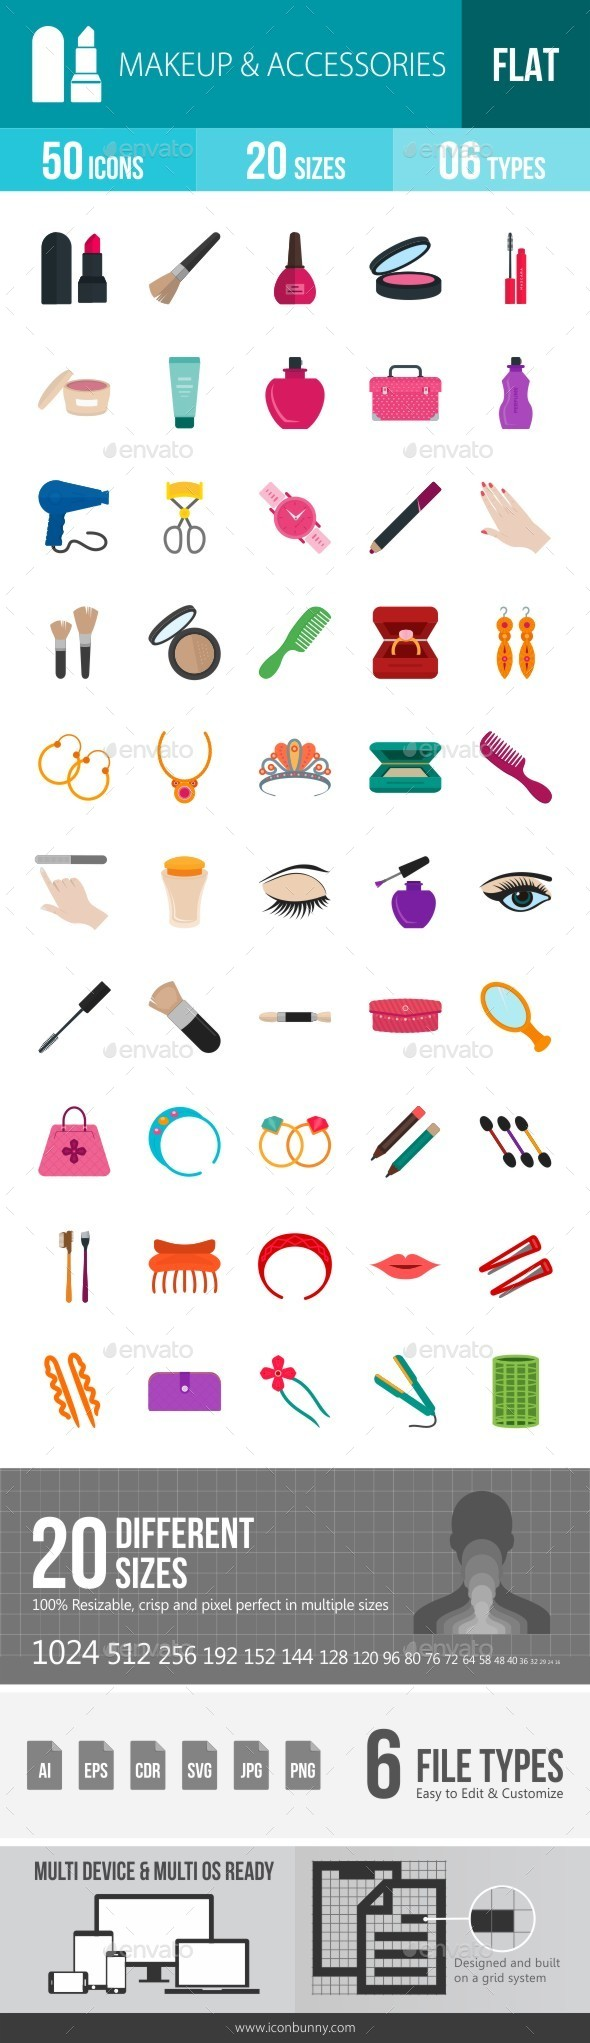 Makeup & Accessories Flat Multicolor Icons - Icons